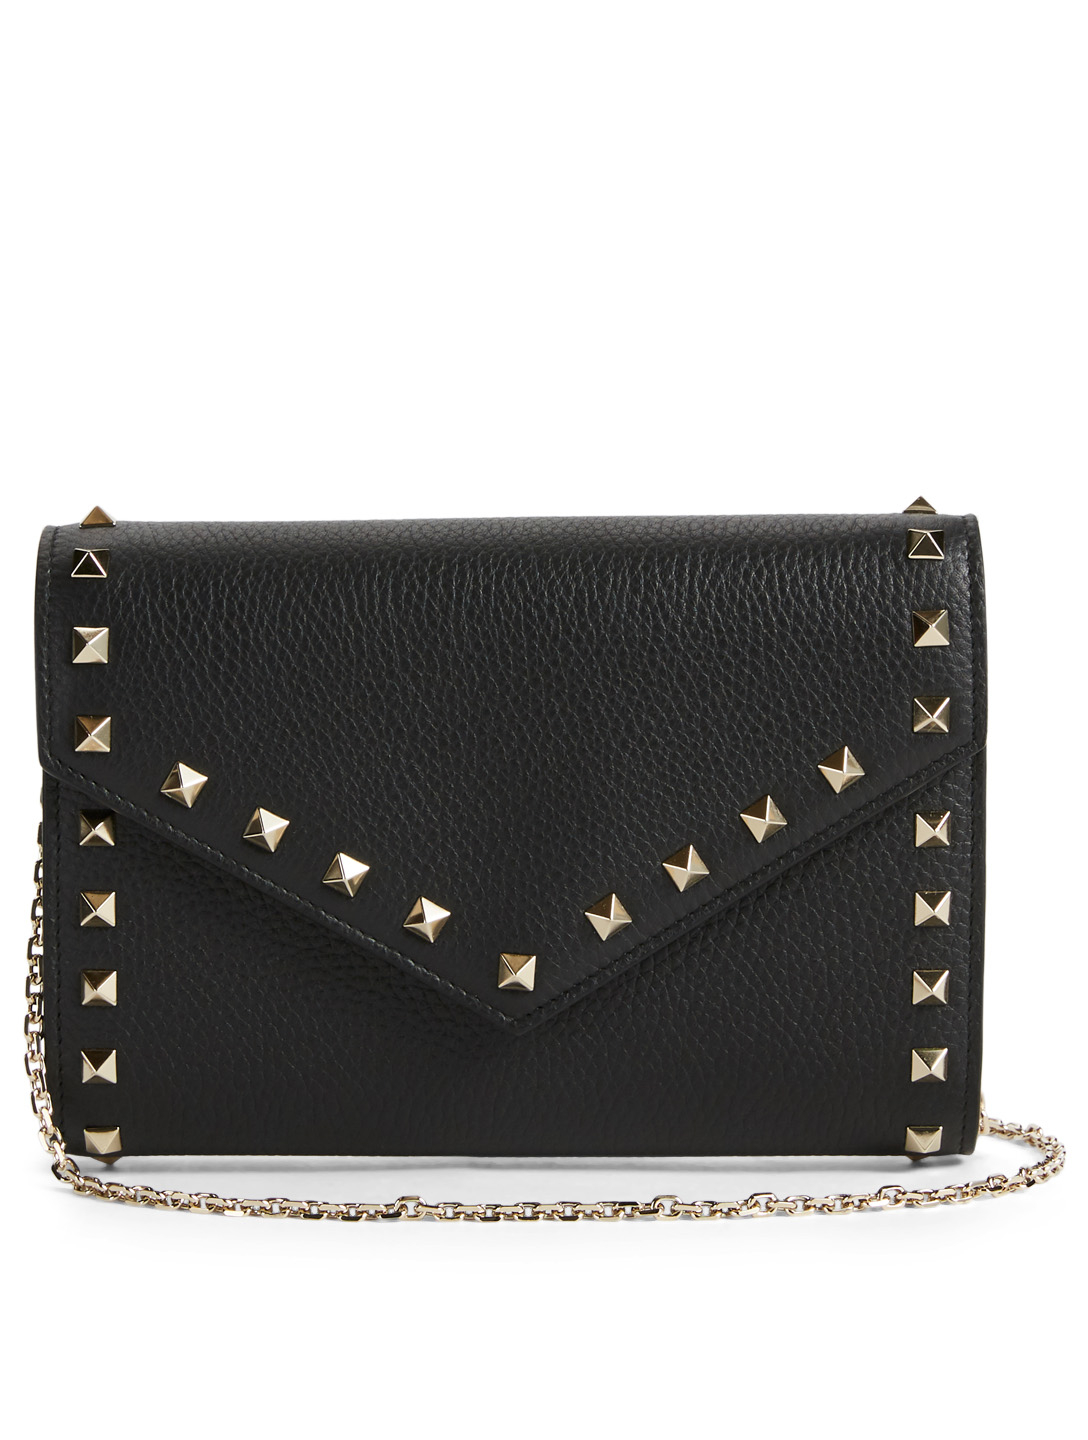 bf03ed7b8c VALENTINO Rockstud Leather Wallet Chain Bag | Holt Renfrew